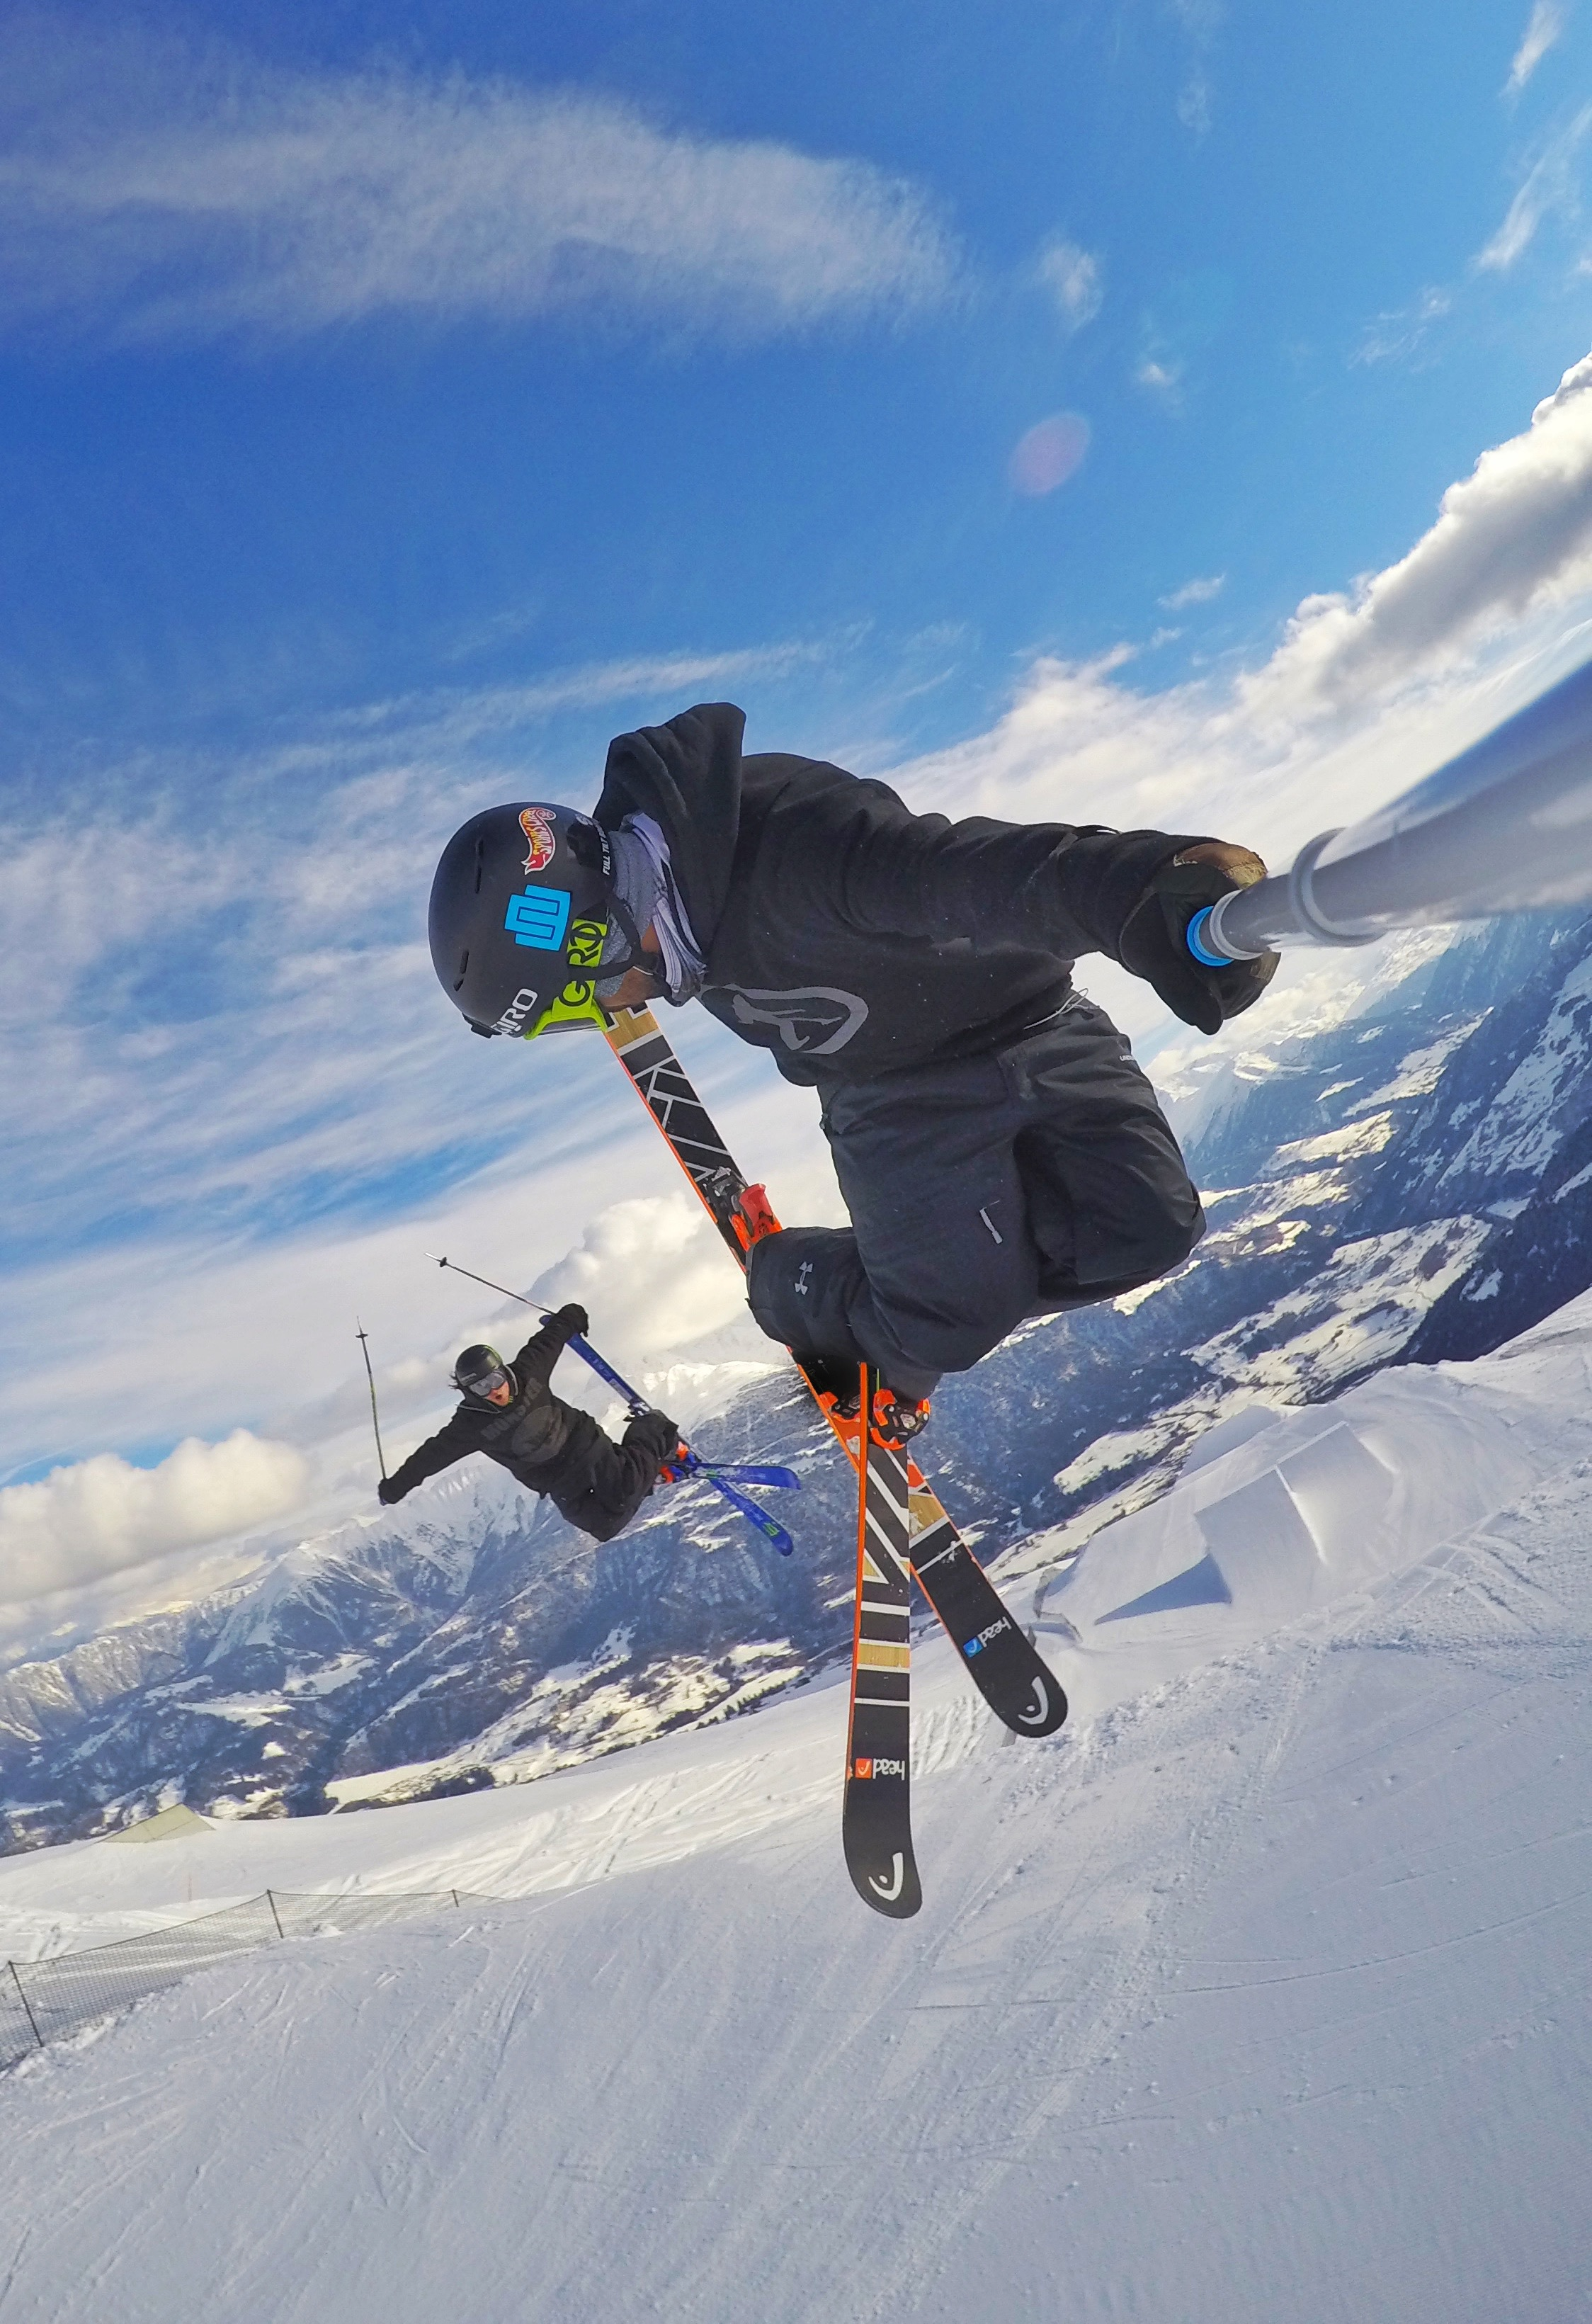 Jumping with Woodsy in Laax! Easily one of the best places to ride in the World.